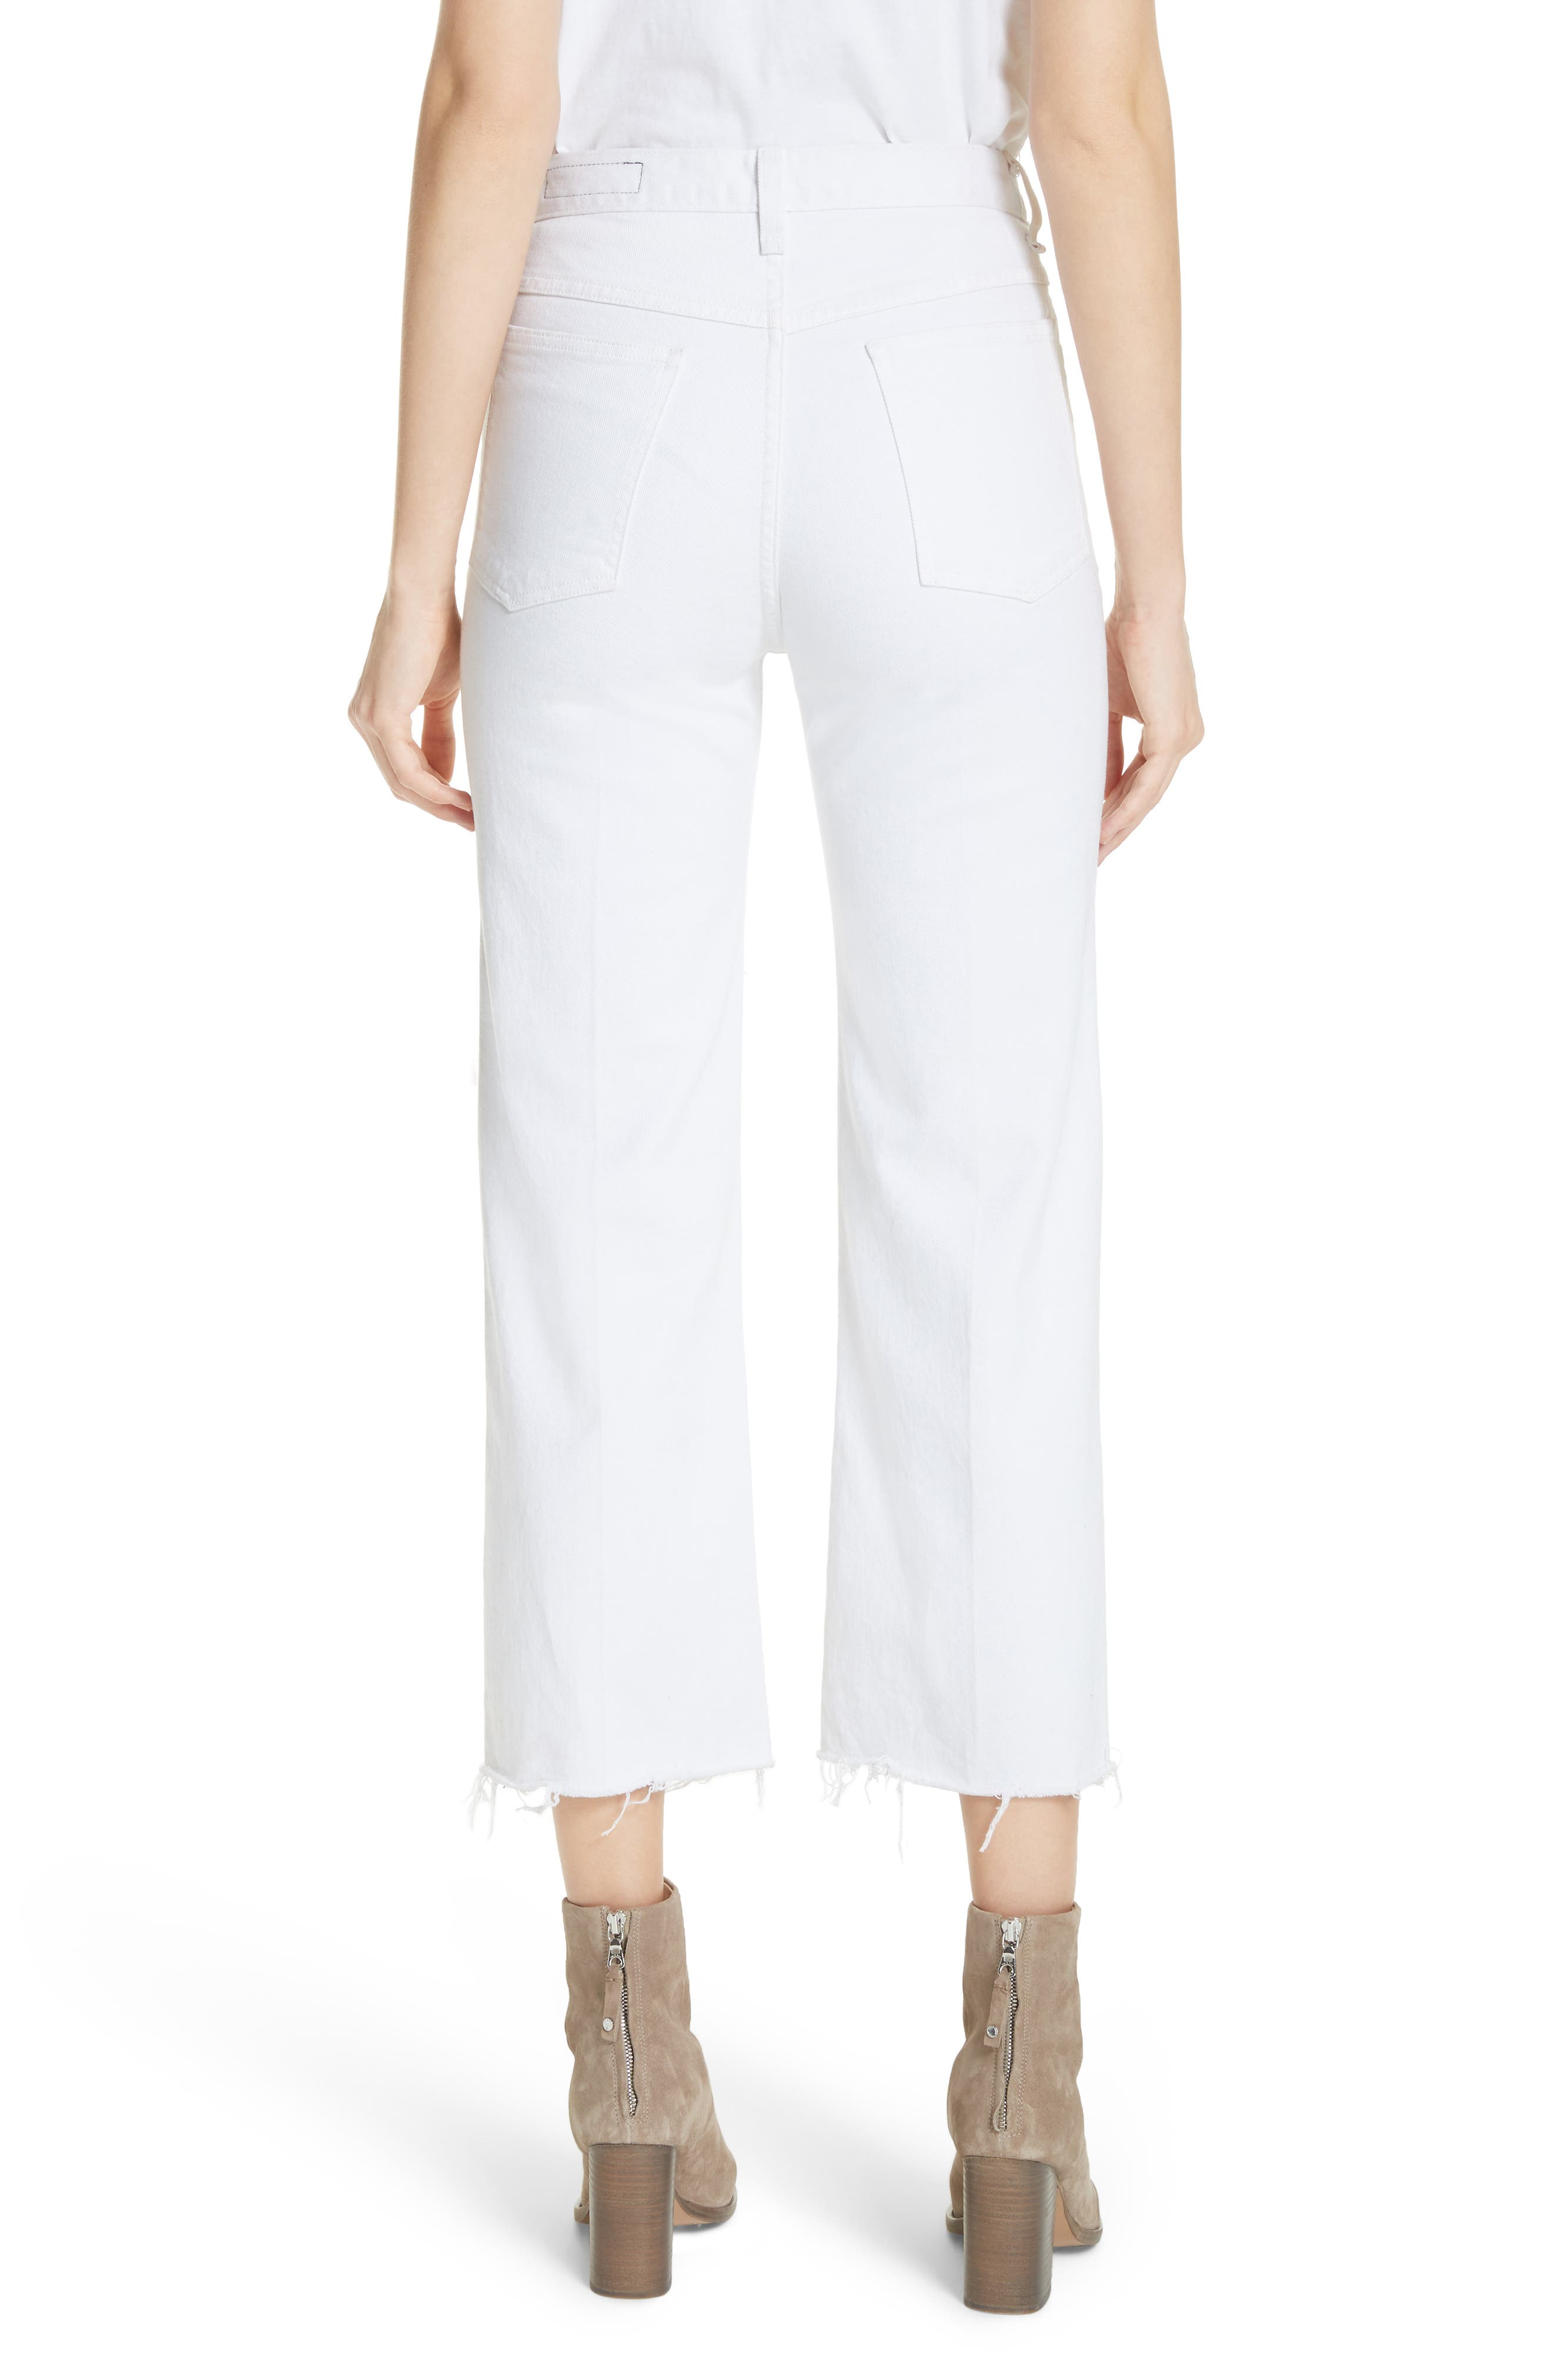 Justine High Waist Ankle Wide Leg Trouser Jeans,                             Alternate thumbnail 2, color,                             White